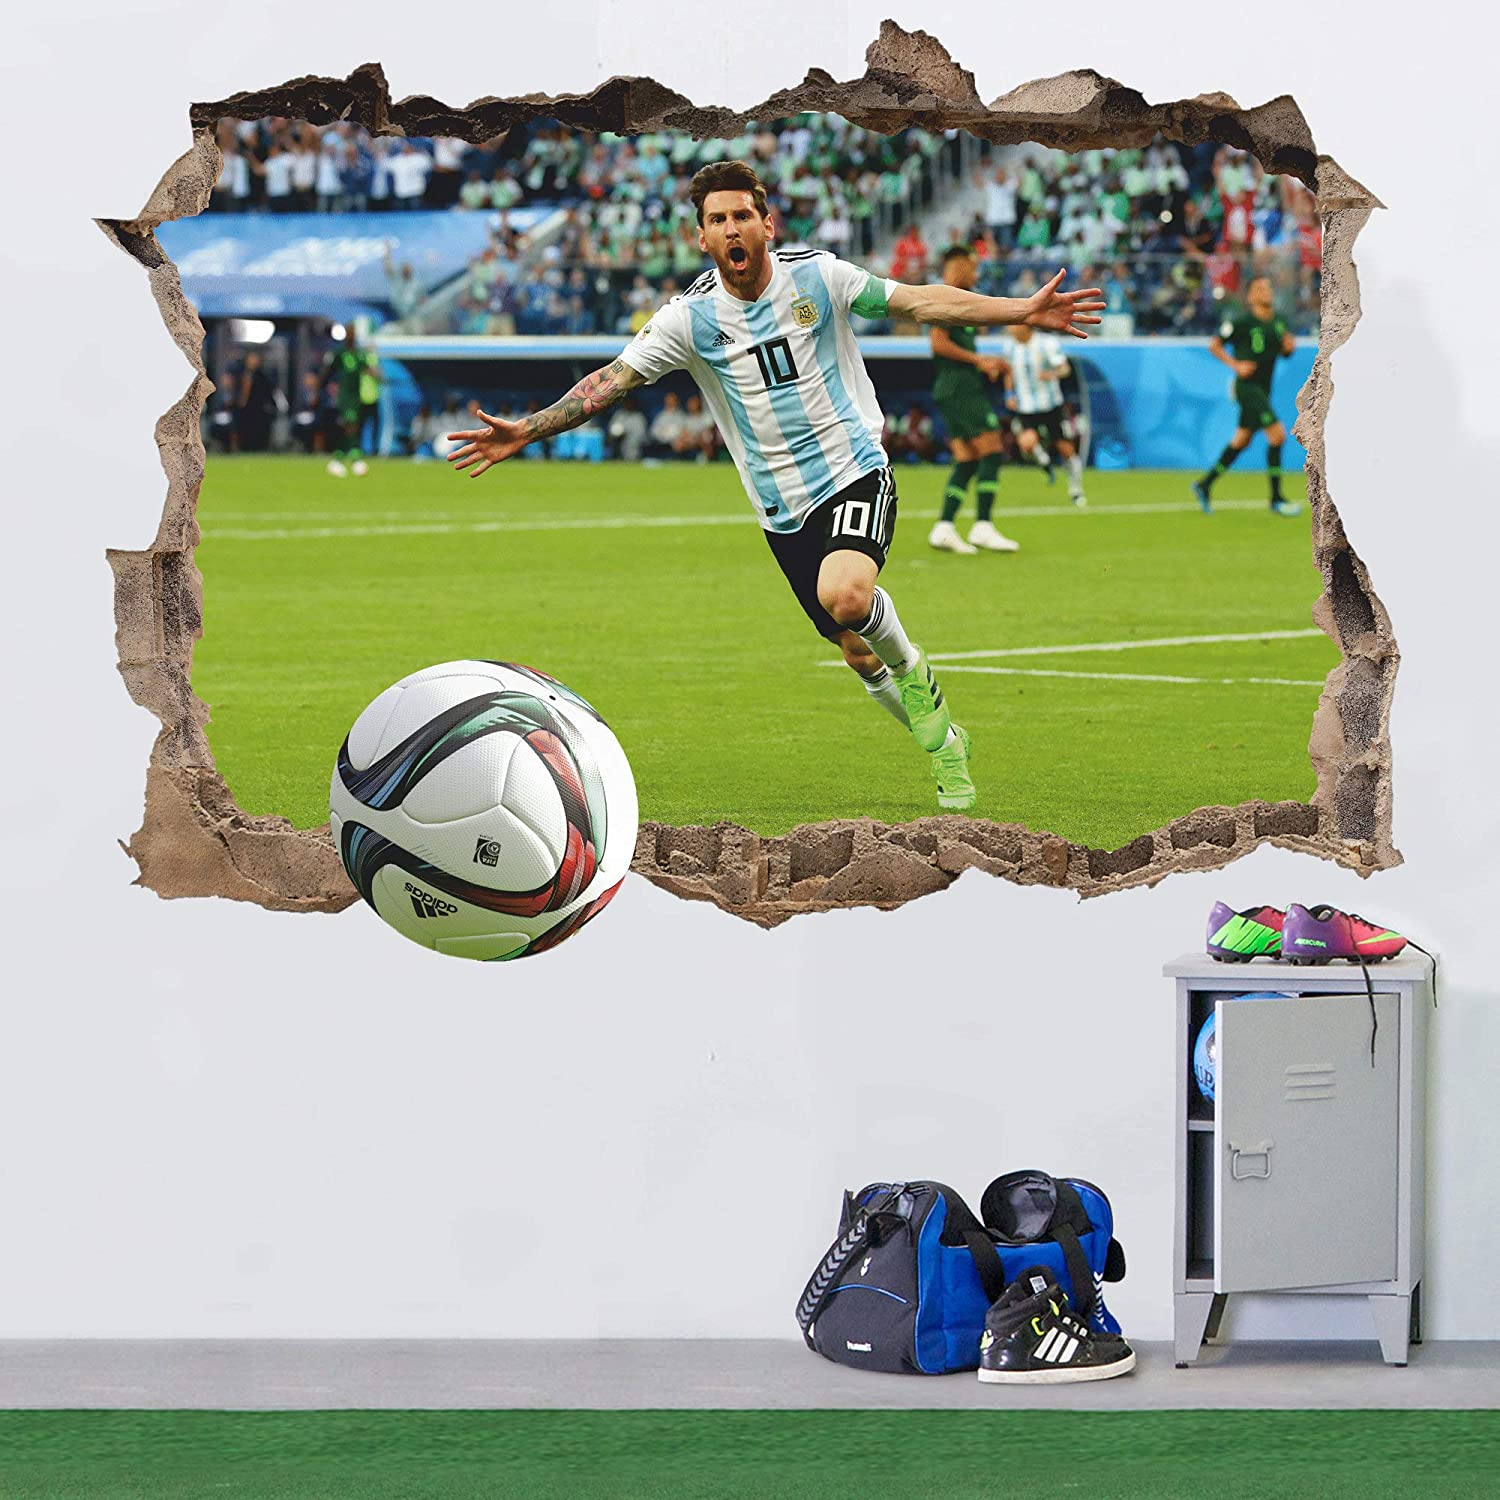 FIFA Wall Sticker Removable Football 3D Wall Decal Lionel Messi Sport